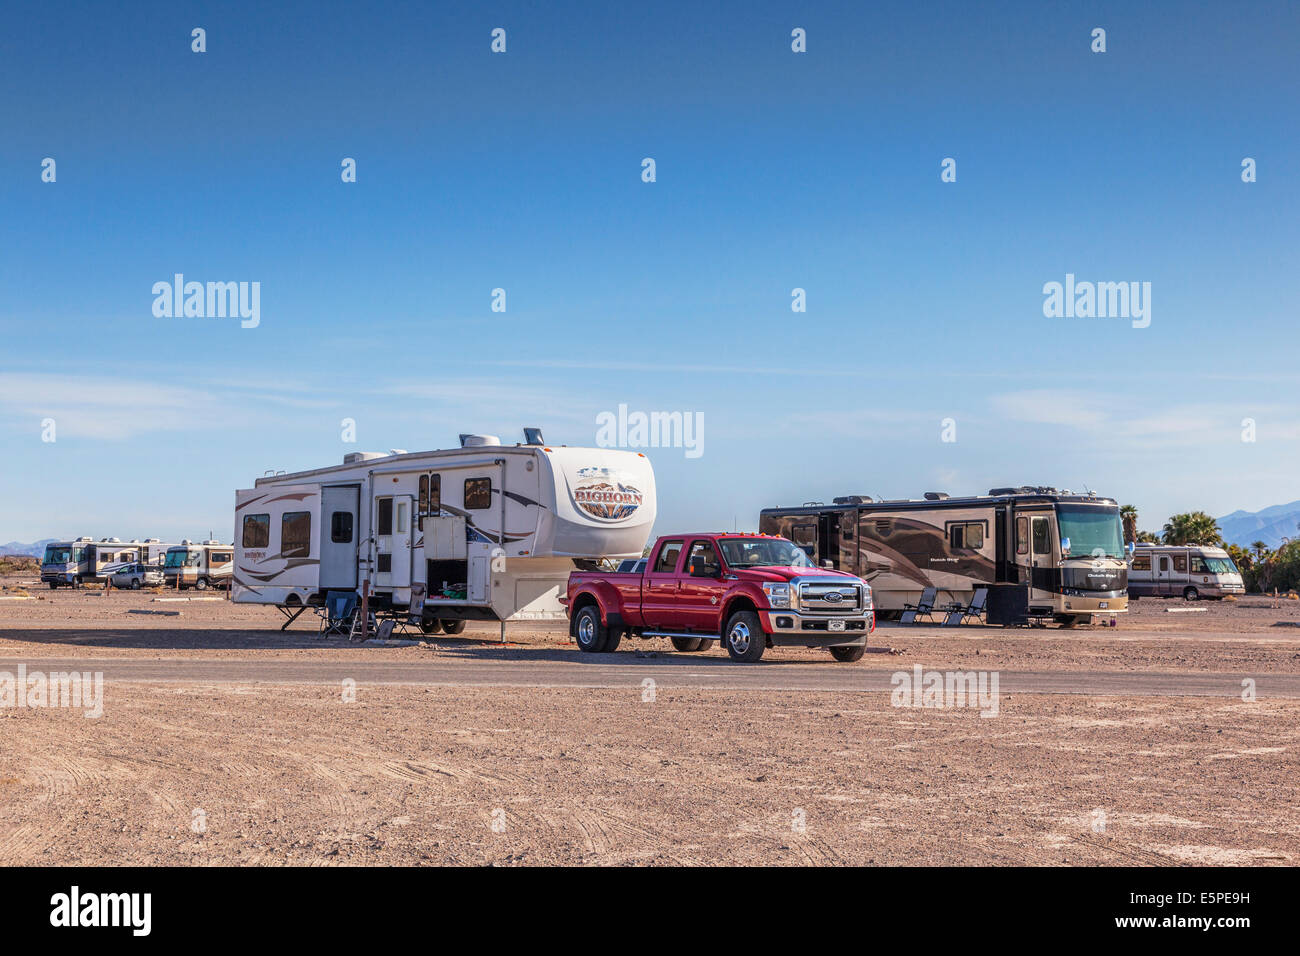 Large American motorhomes and fifth wheelers at Furnace Creek campground, Death Valley, California. - Stock Image